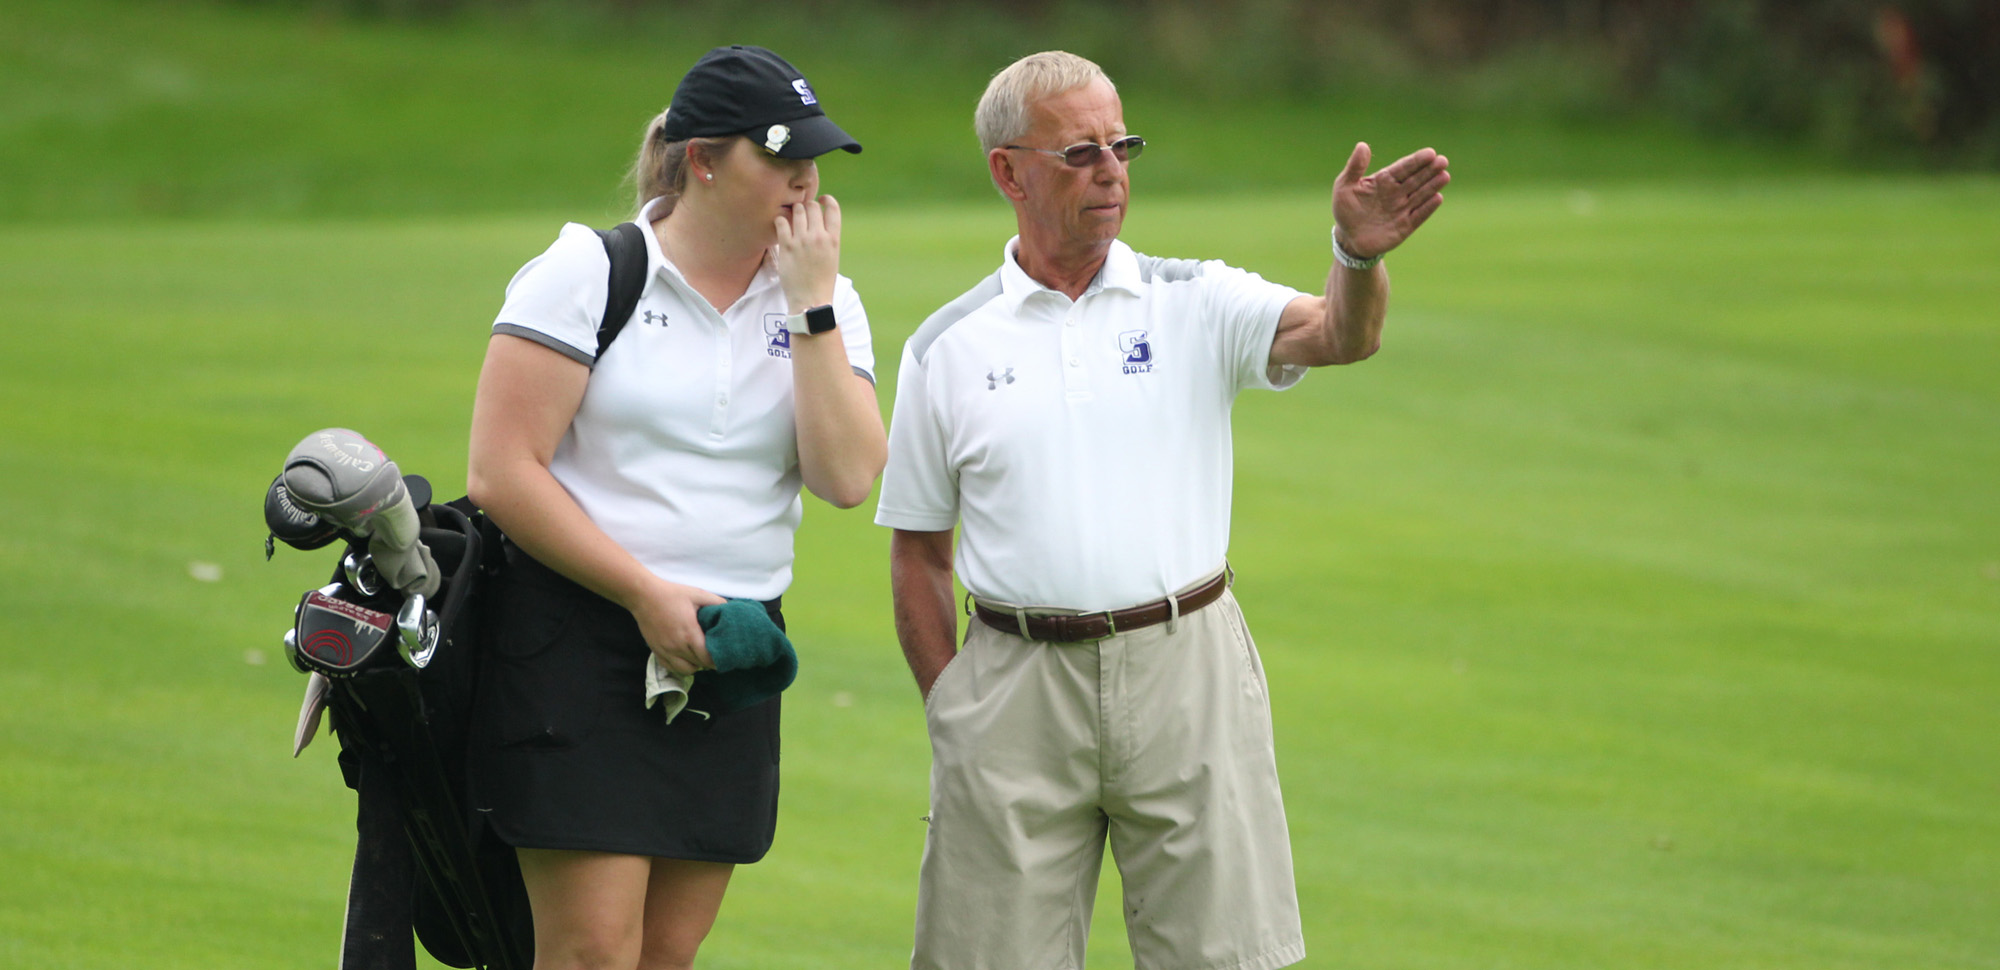 Coach Ed Karpovich and the women's golf team will wrap up their fall season on Sunday against Misericordia.